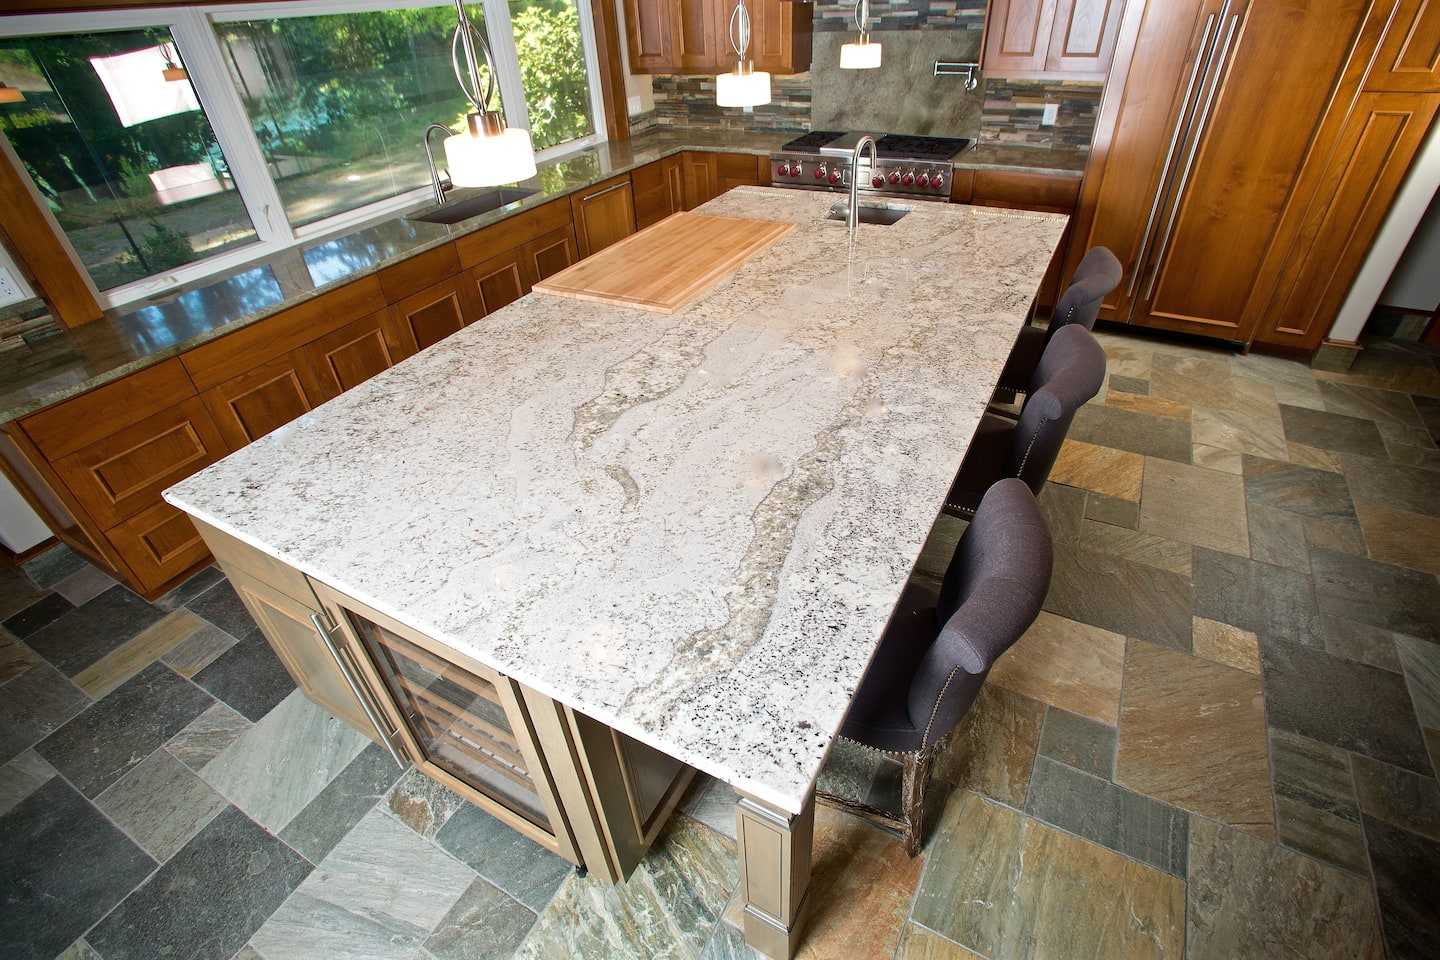 Granite Countertop Styles : Granite kitchen countertop designs and styles angie s list